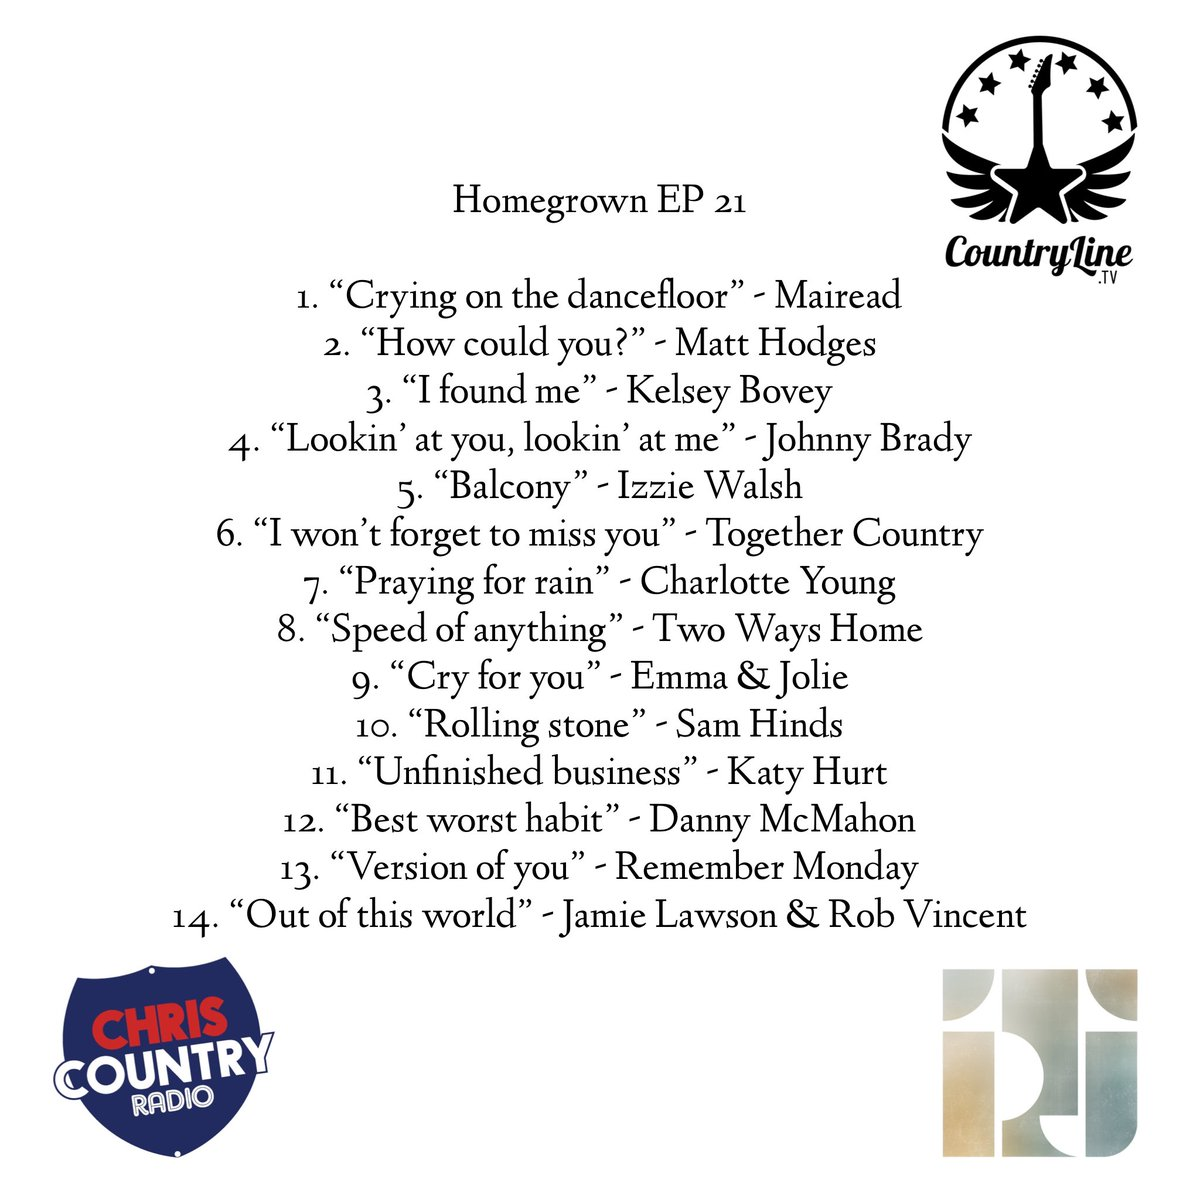 """Coming up on tomorrow's episode of """"Homegrown"""" @chriscountry, we have brand new music from @jamielawsonuk & @RobVincentMusic plus the latest releases from @IzzieWalsh, @kelseyboveyuk & a brilliant new track from @UkHinds. All of this & so much more! #country #radio"""